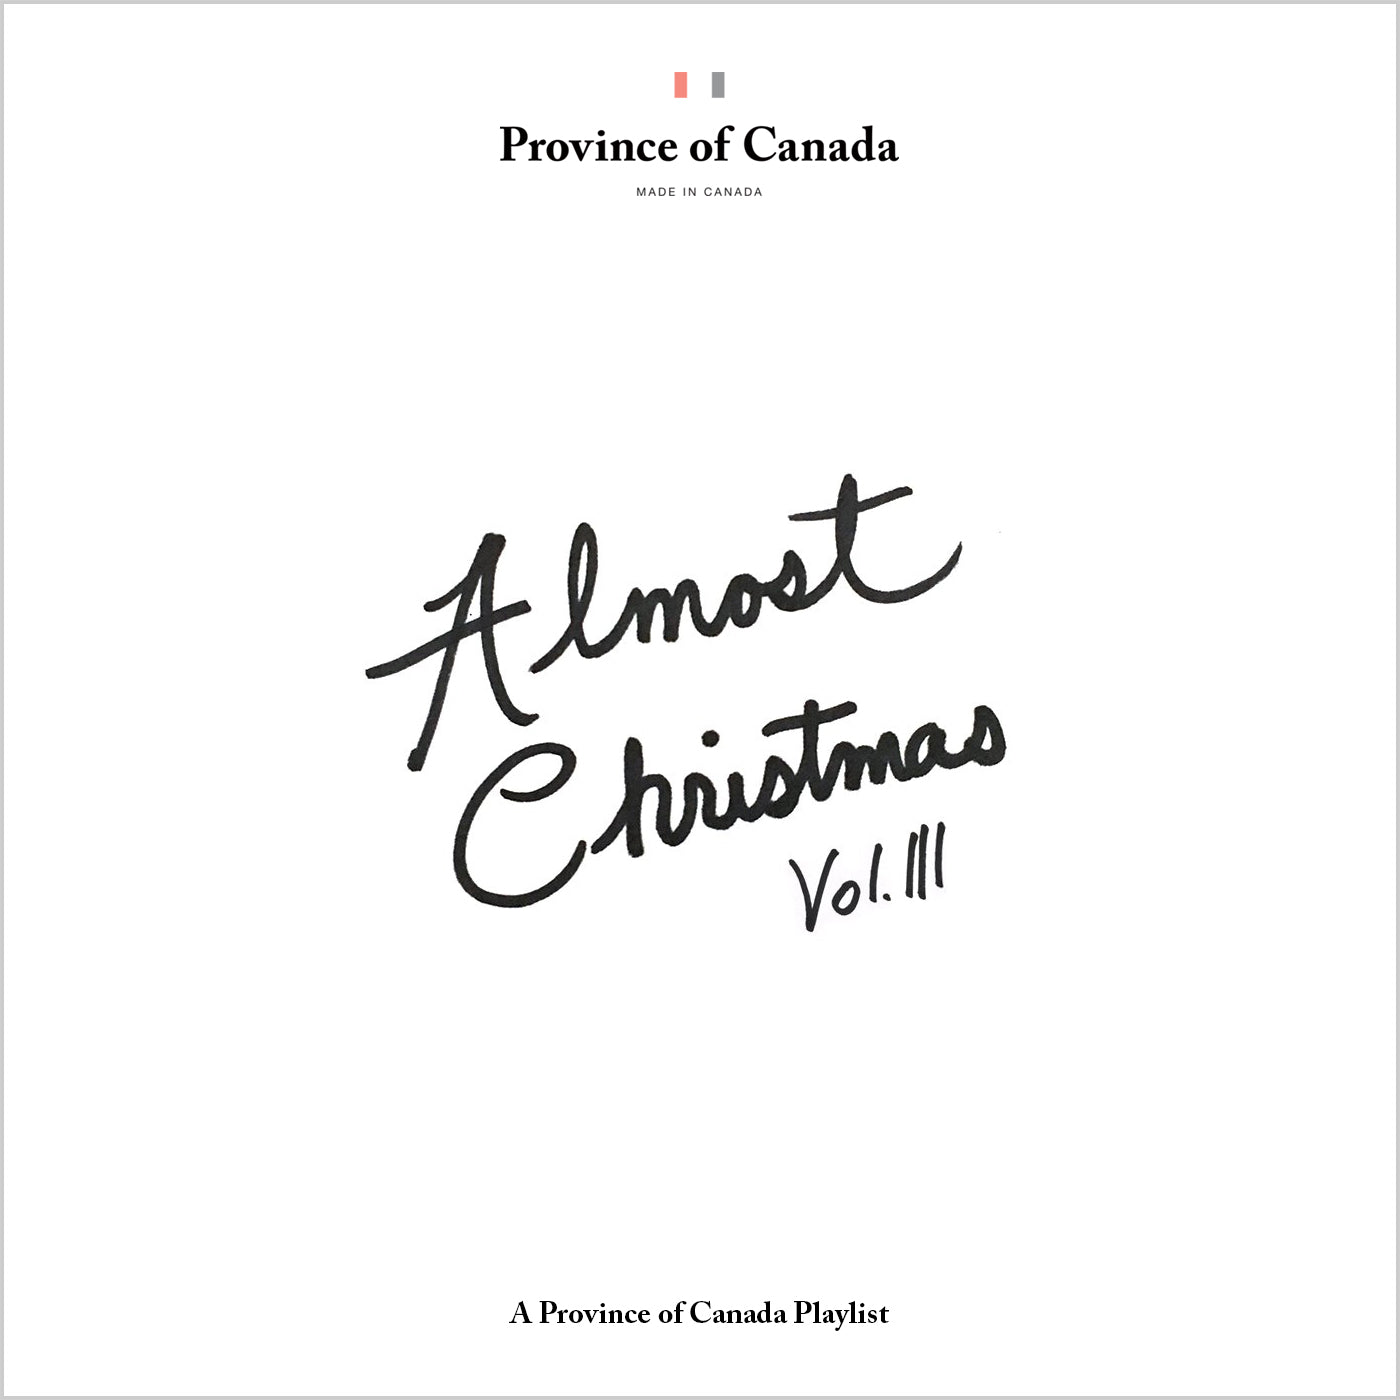 Province of Canada - Made in Canada - Playlist - Almost Christmas Vol. III